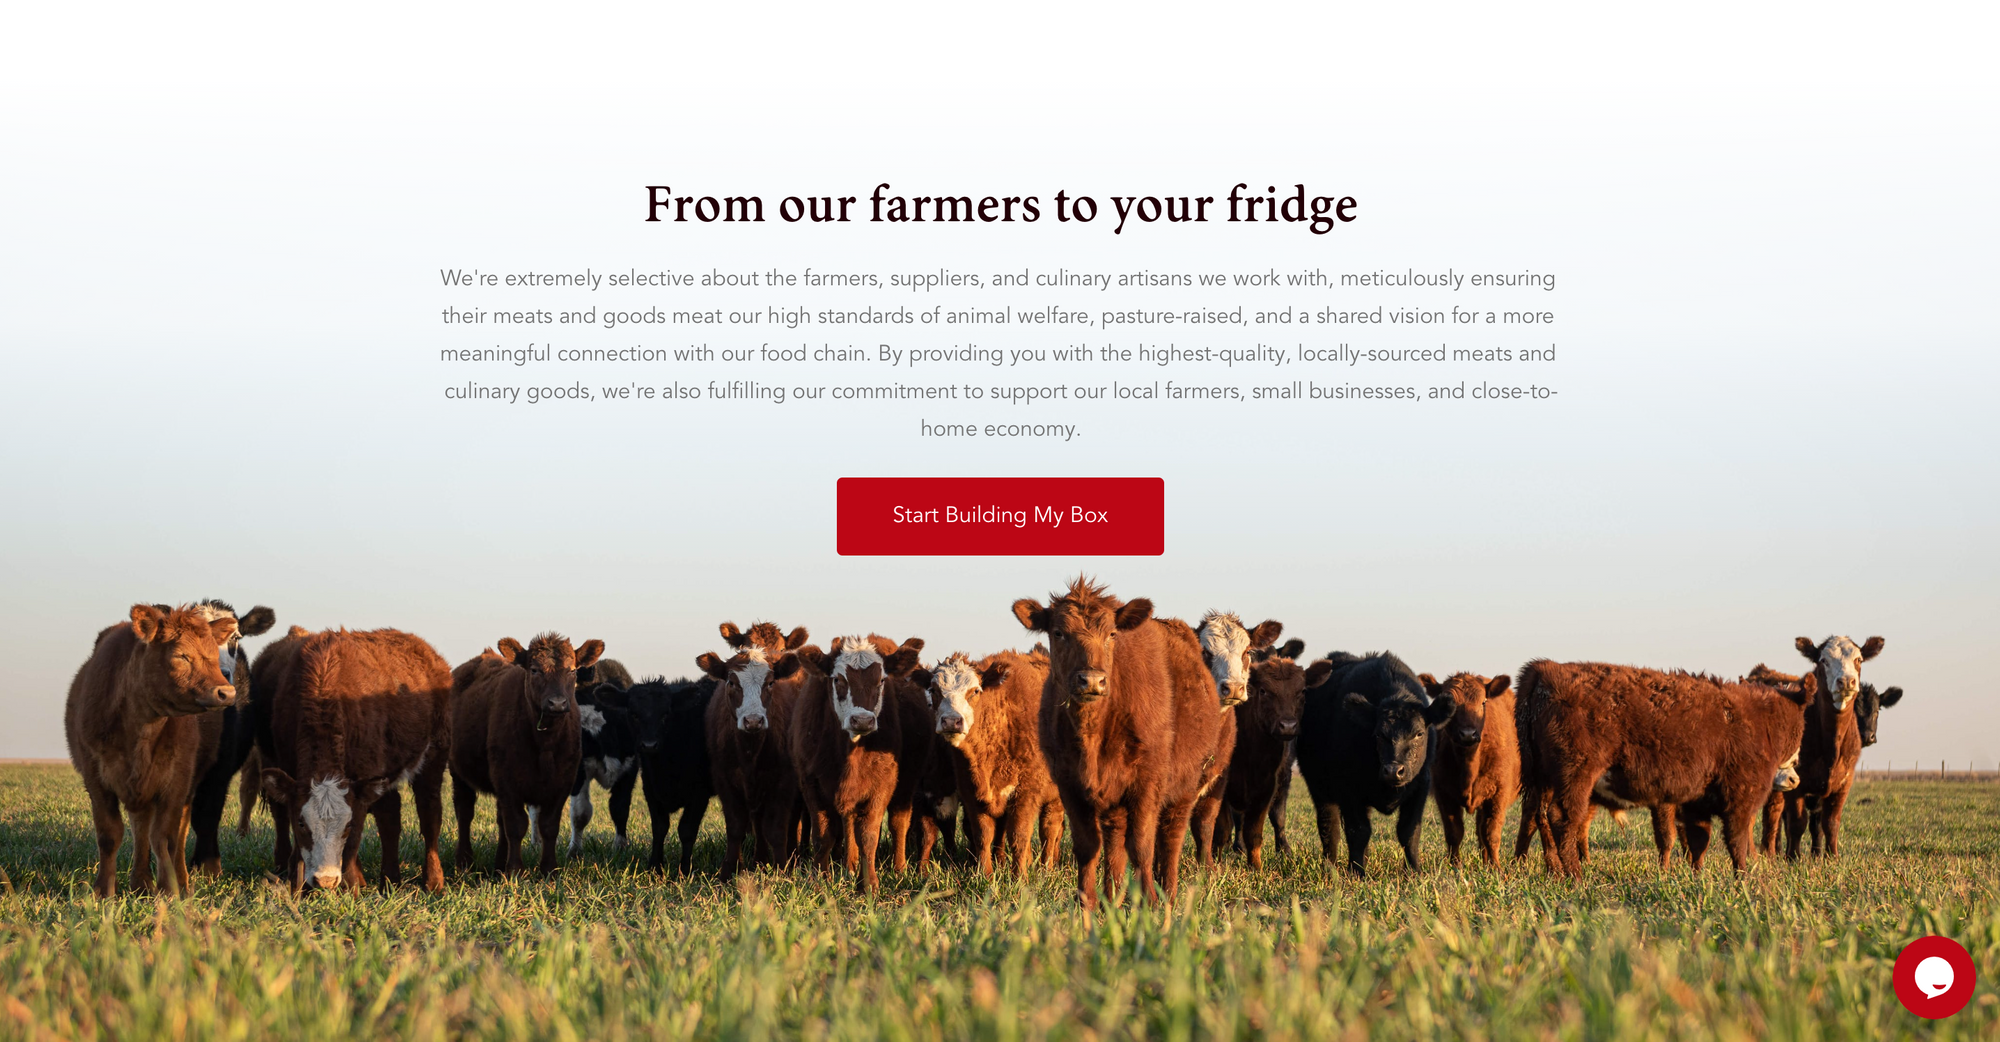 Northern Raised is a customizable monthly subscription solution for our grass-fed, naturally-raised meats and fish business.